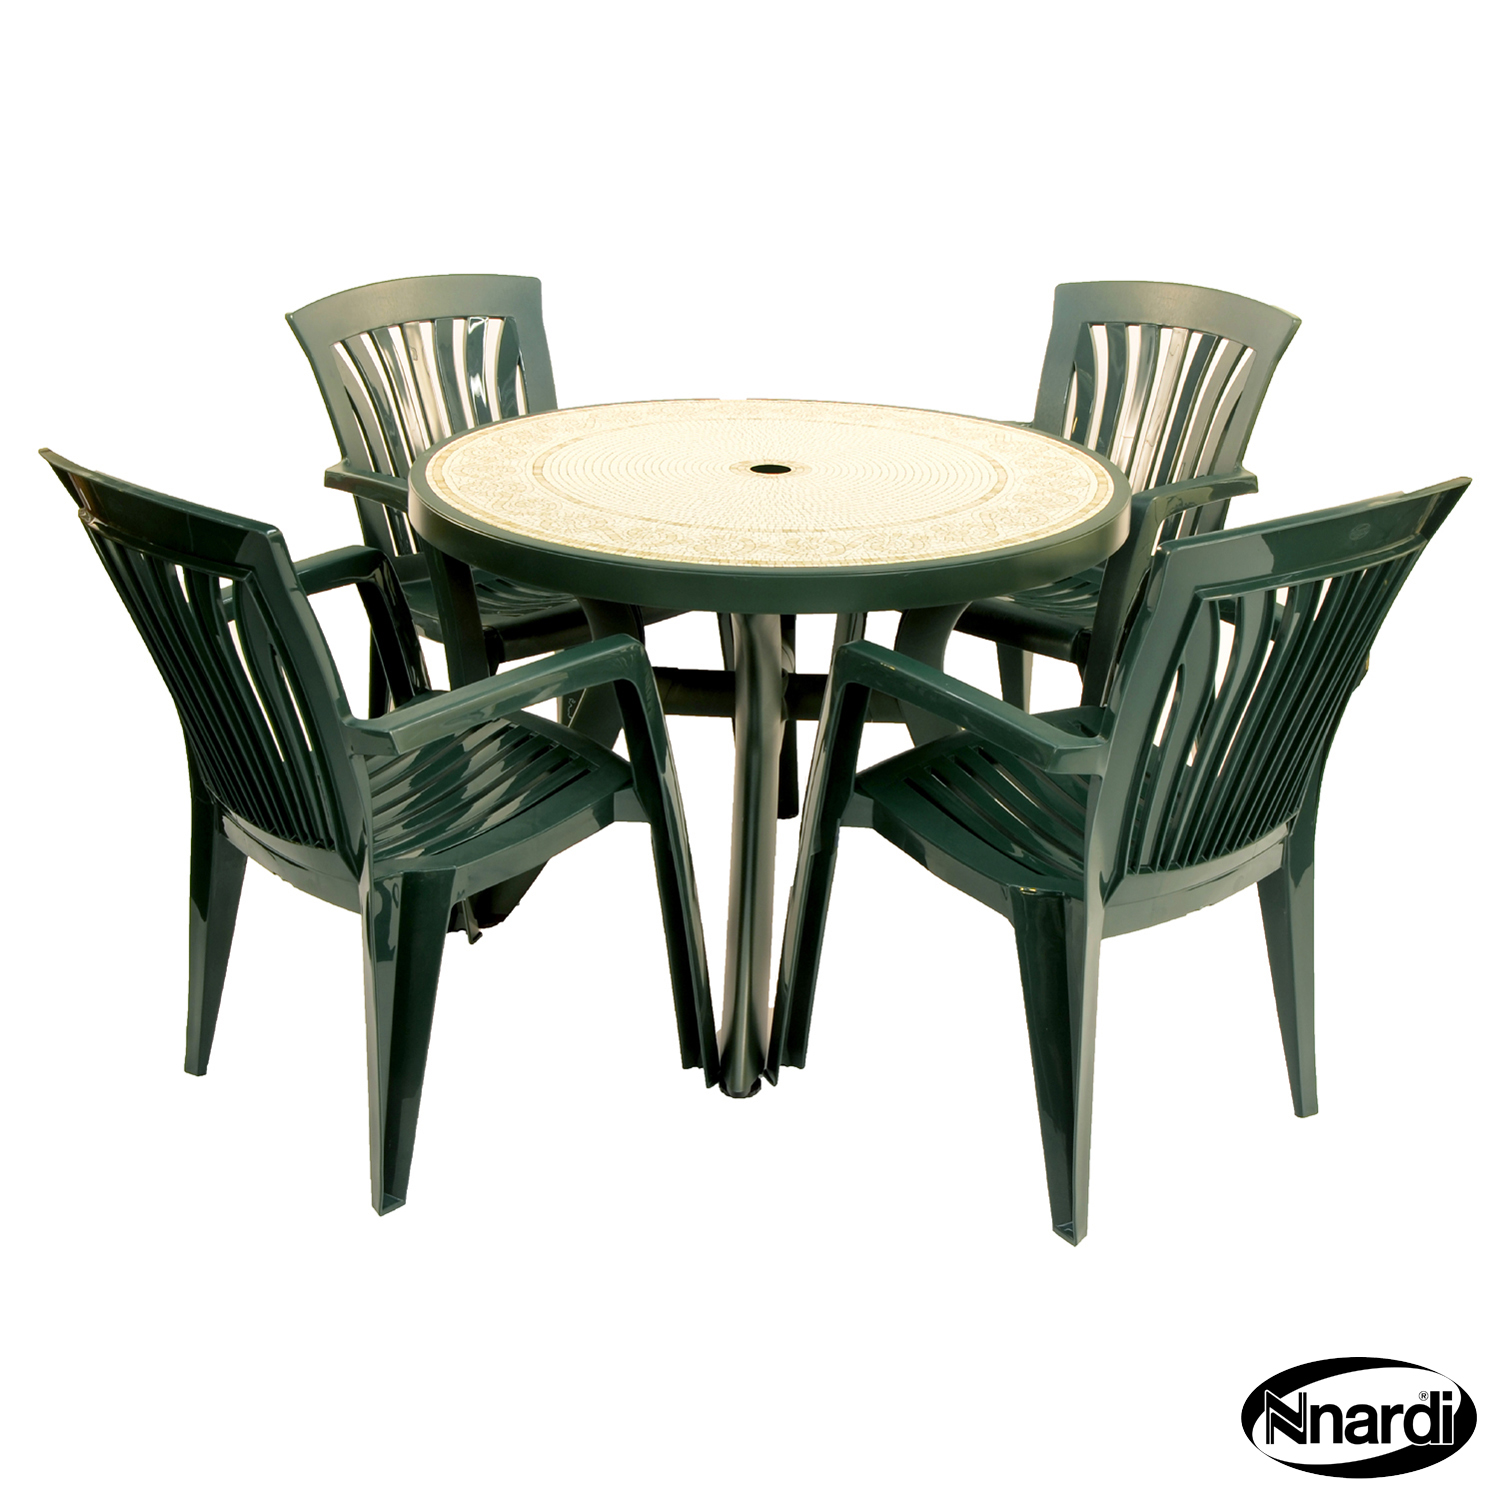 Green Toscana 120 table with 4 Green Diana chairs